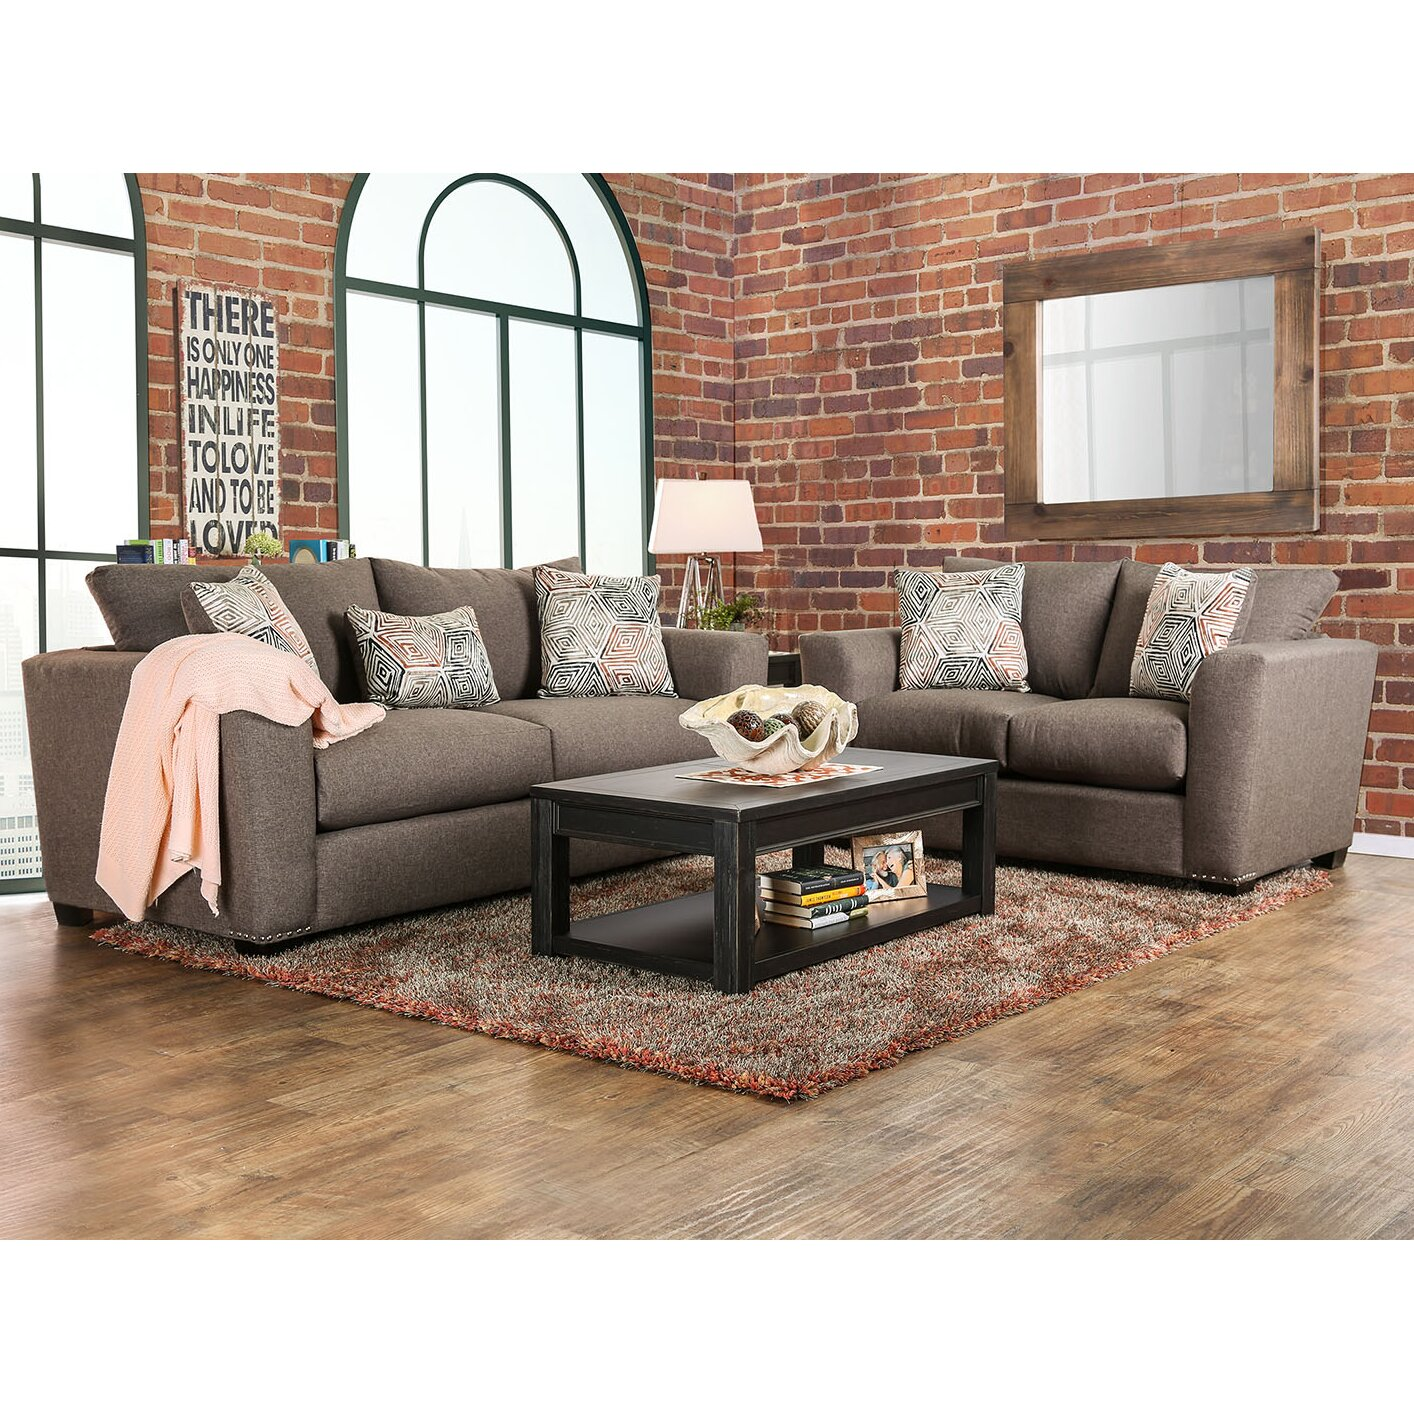 3 Piece Living Room Set Of A J Homes Studio Bensen 3 Piece Living Room Set Wayfair